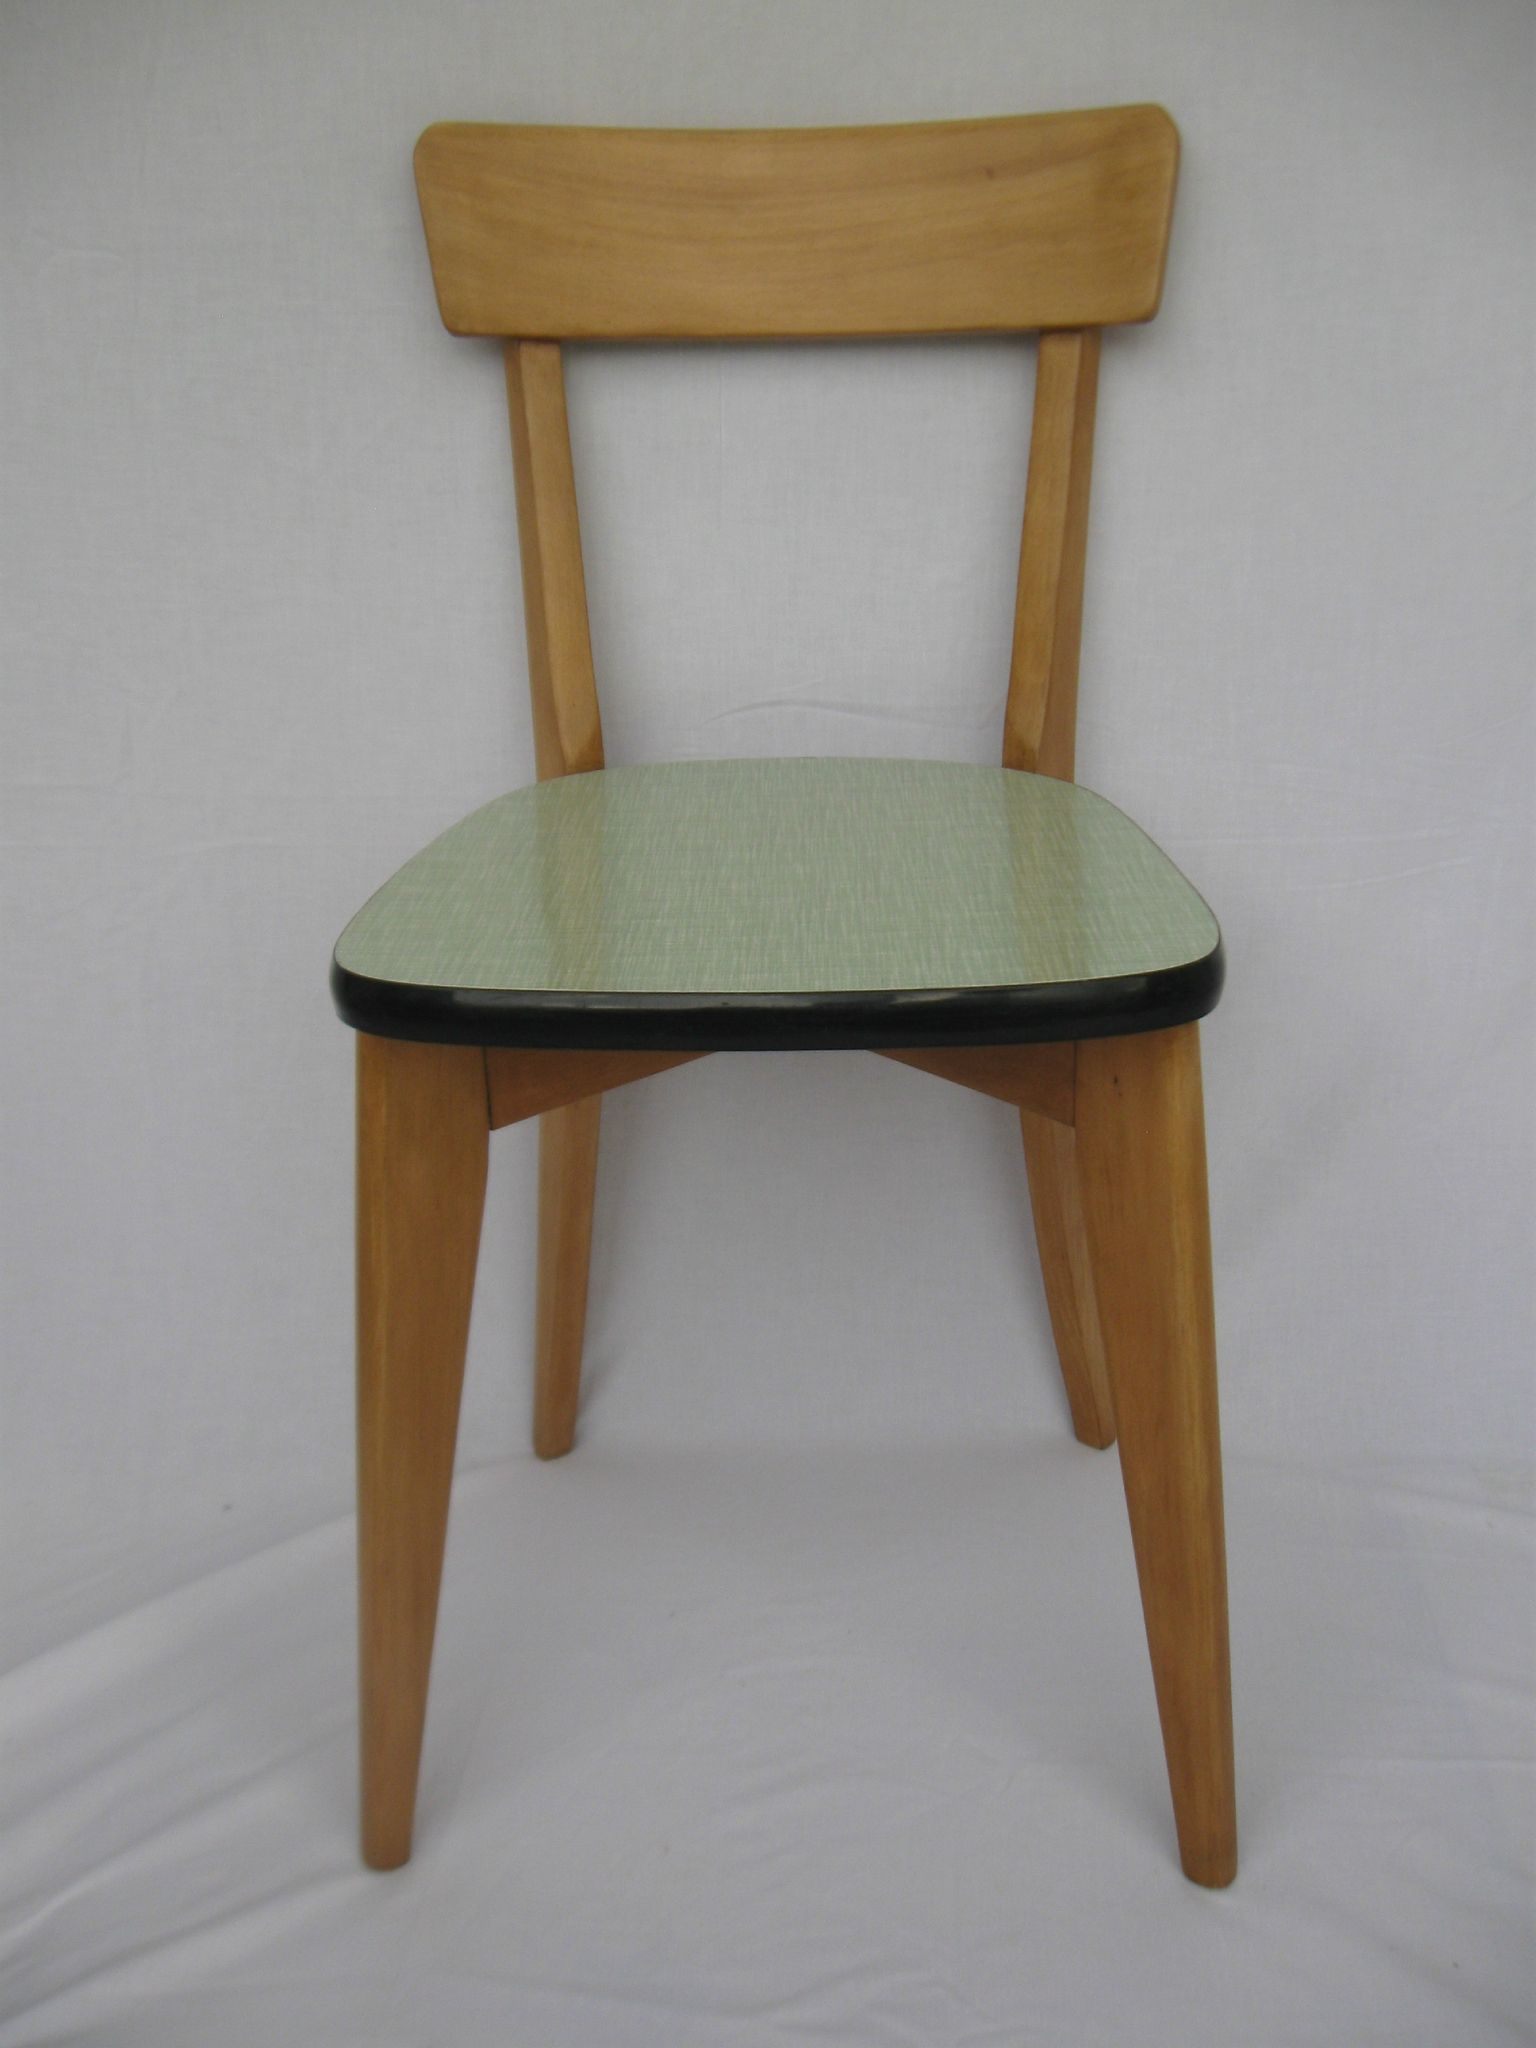 Chaises Hetre Et Formica Annees 50 Reservees Relook Vintage Chaise Meuble Vintage Chaise Bistrot